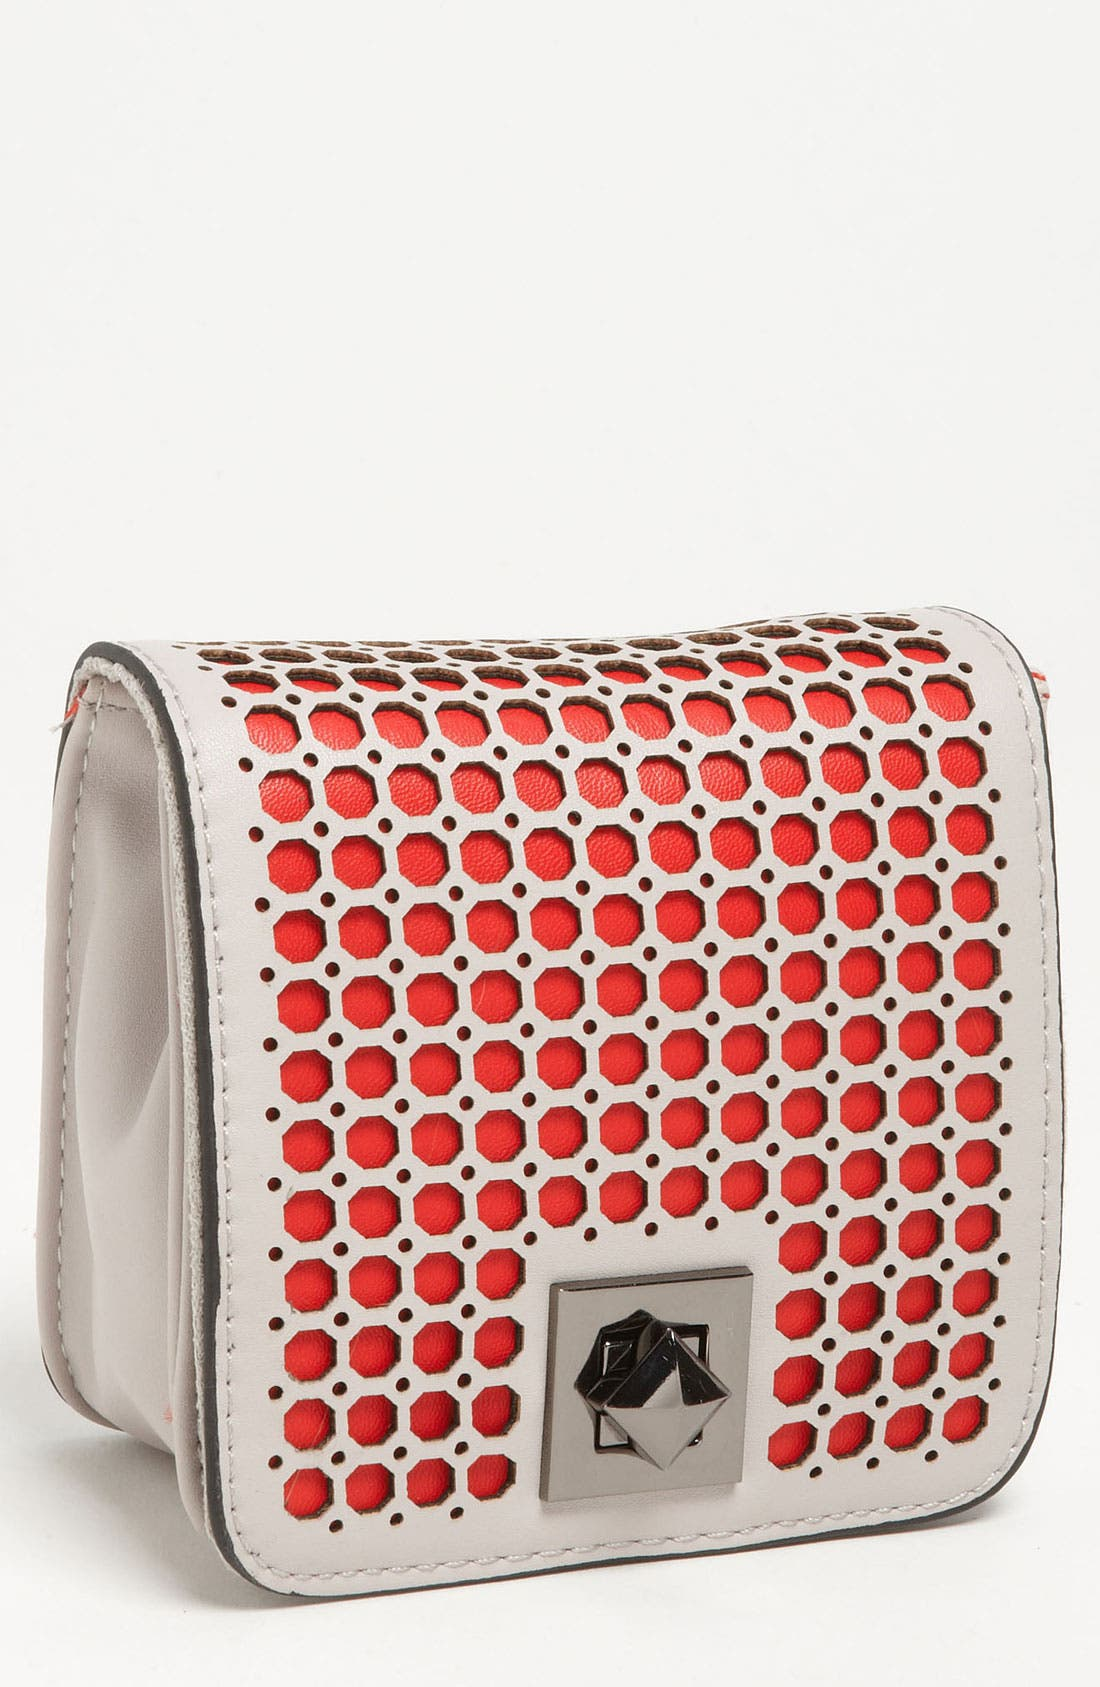 Alternate Image 1 Selected - POVERTY FLATS by rian Perforated Mini Clutch